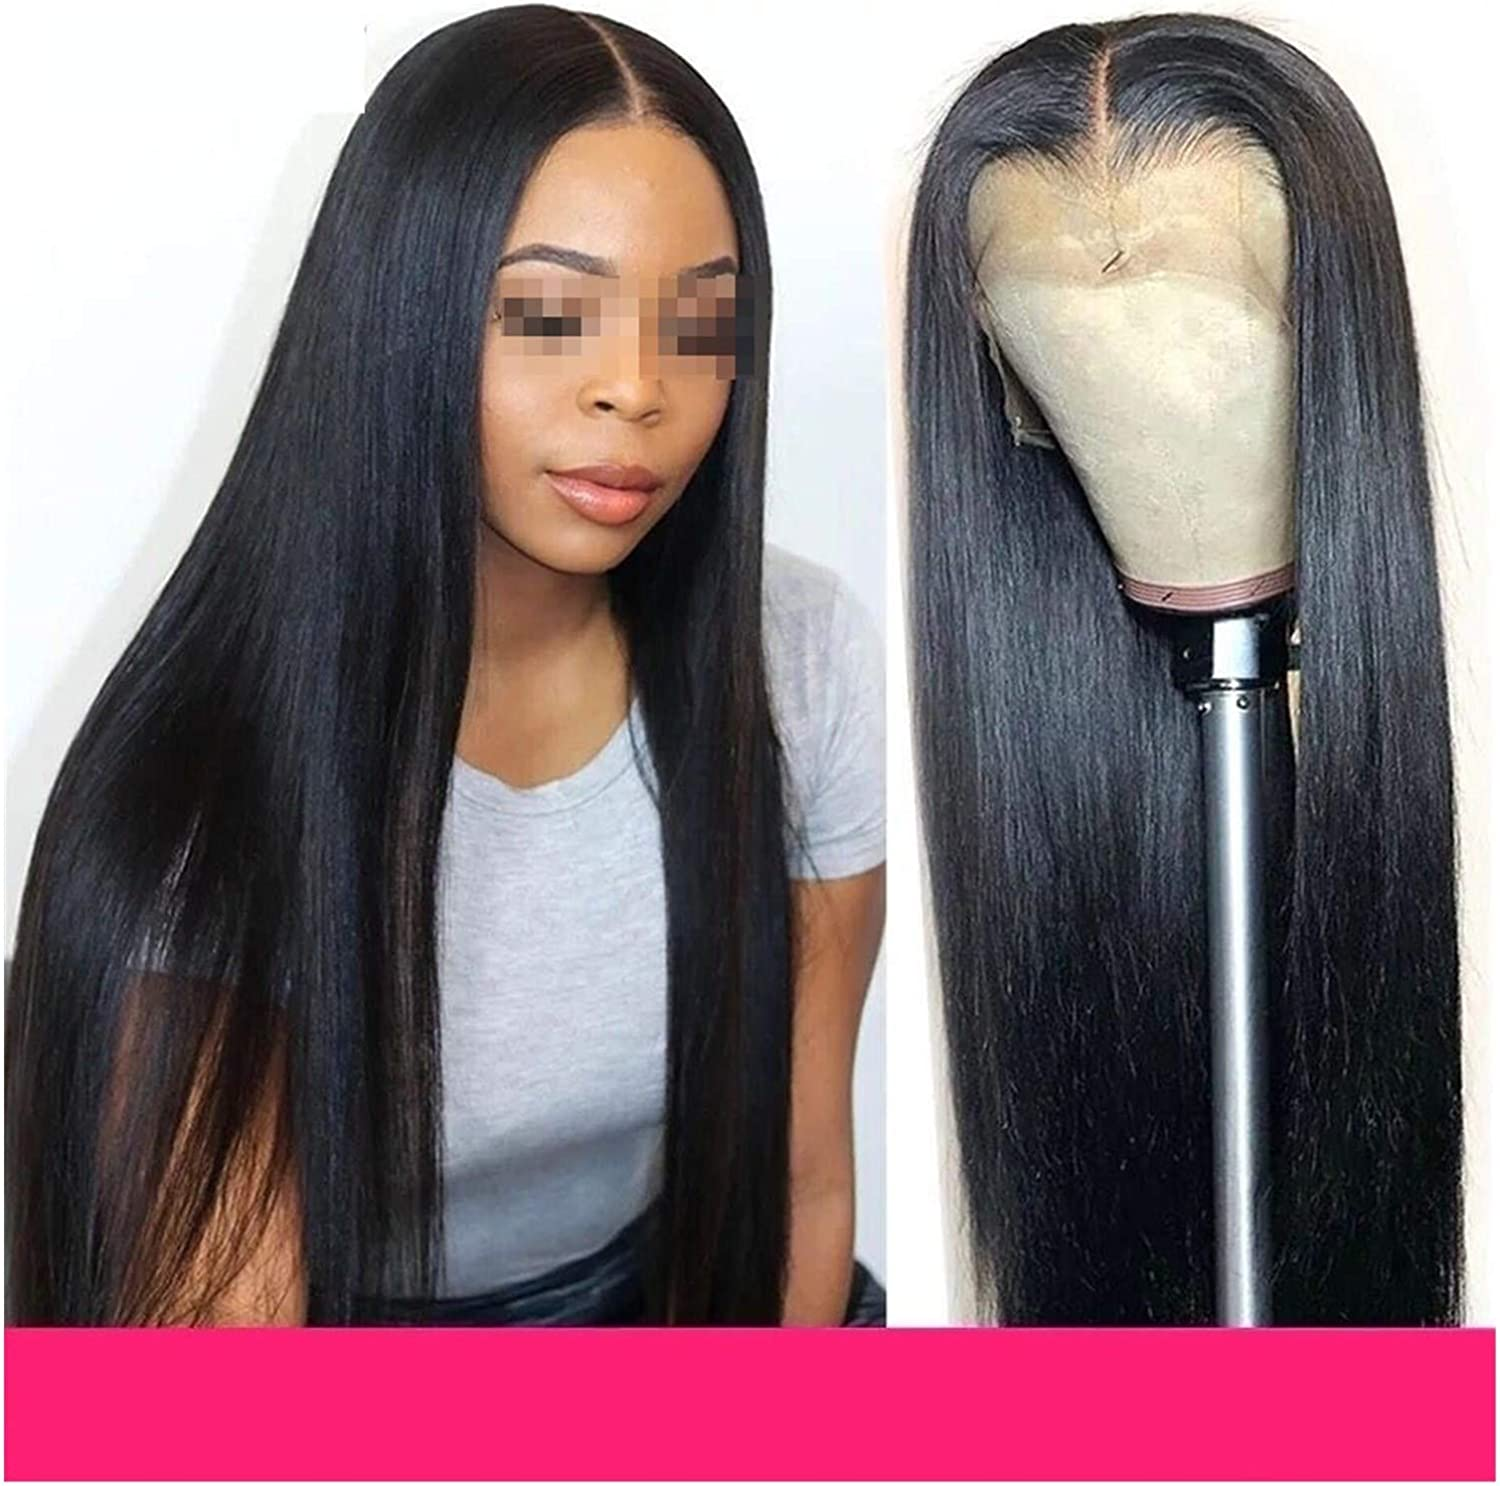 WLDZSW Wig Straight 4 years warranty safety Hair Lace Front Densit 150 : Color 13XT